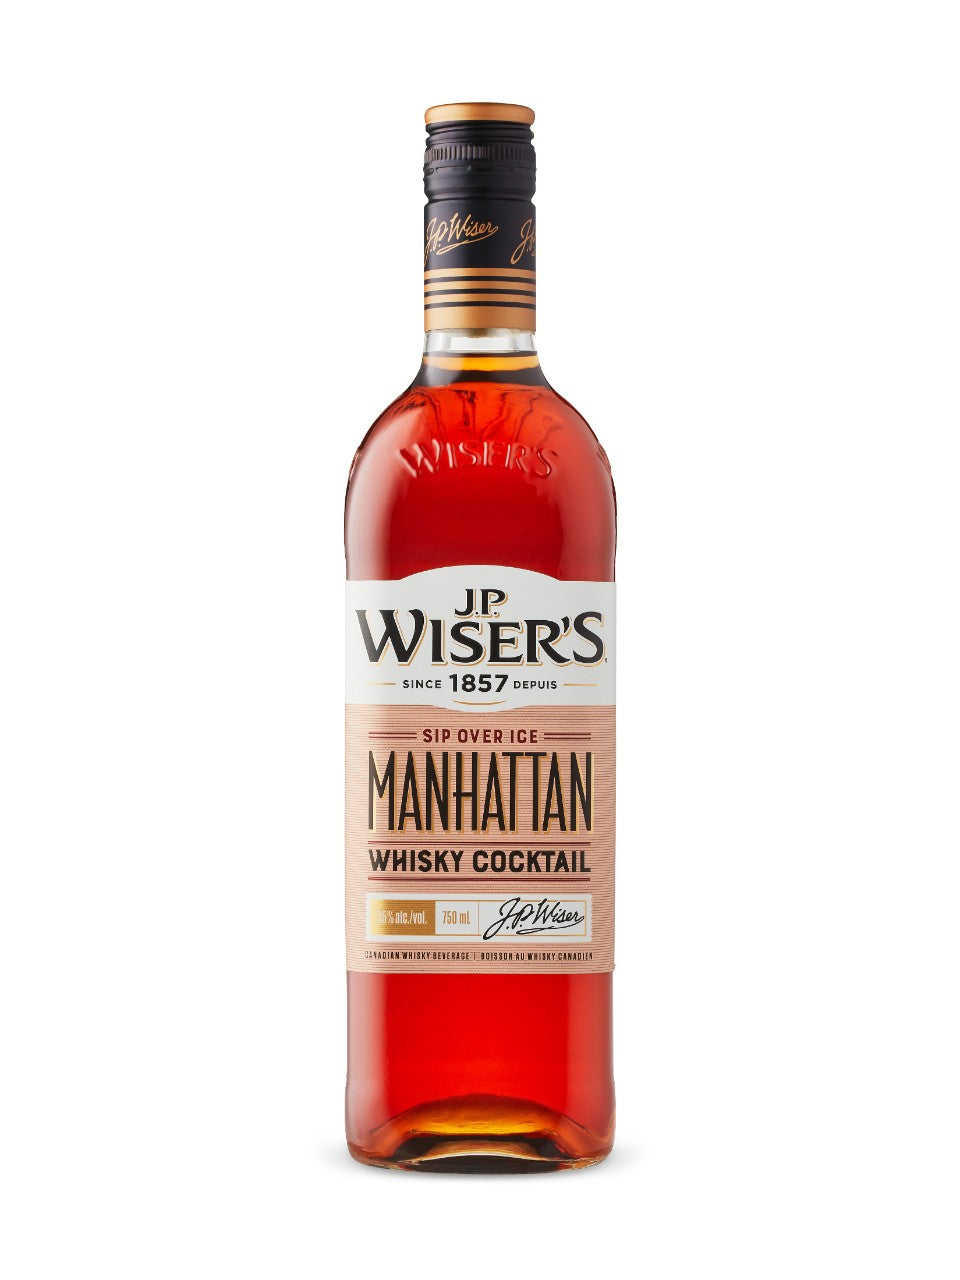 J.P WISER'S MANHATTAN CANADIAN WHISKY